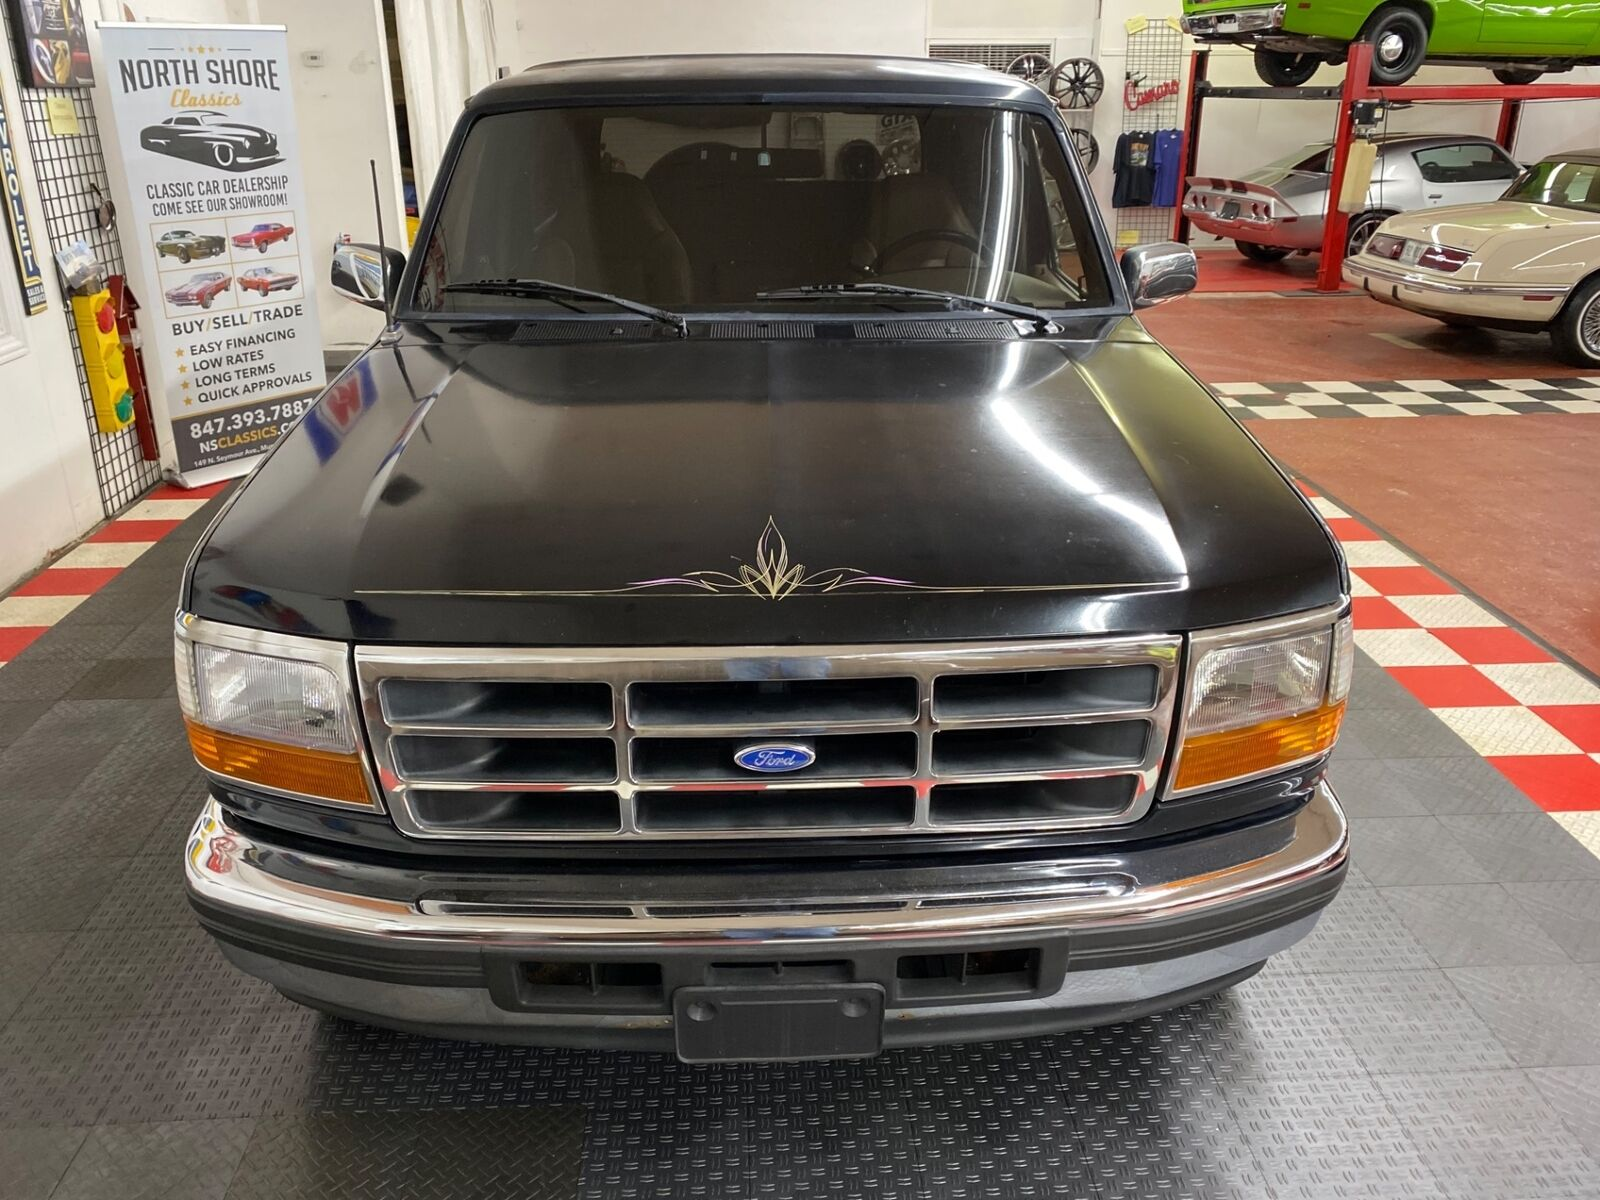 1996 Ford Bronco XLT - SEE VIDEO - | eBay